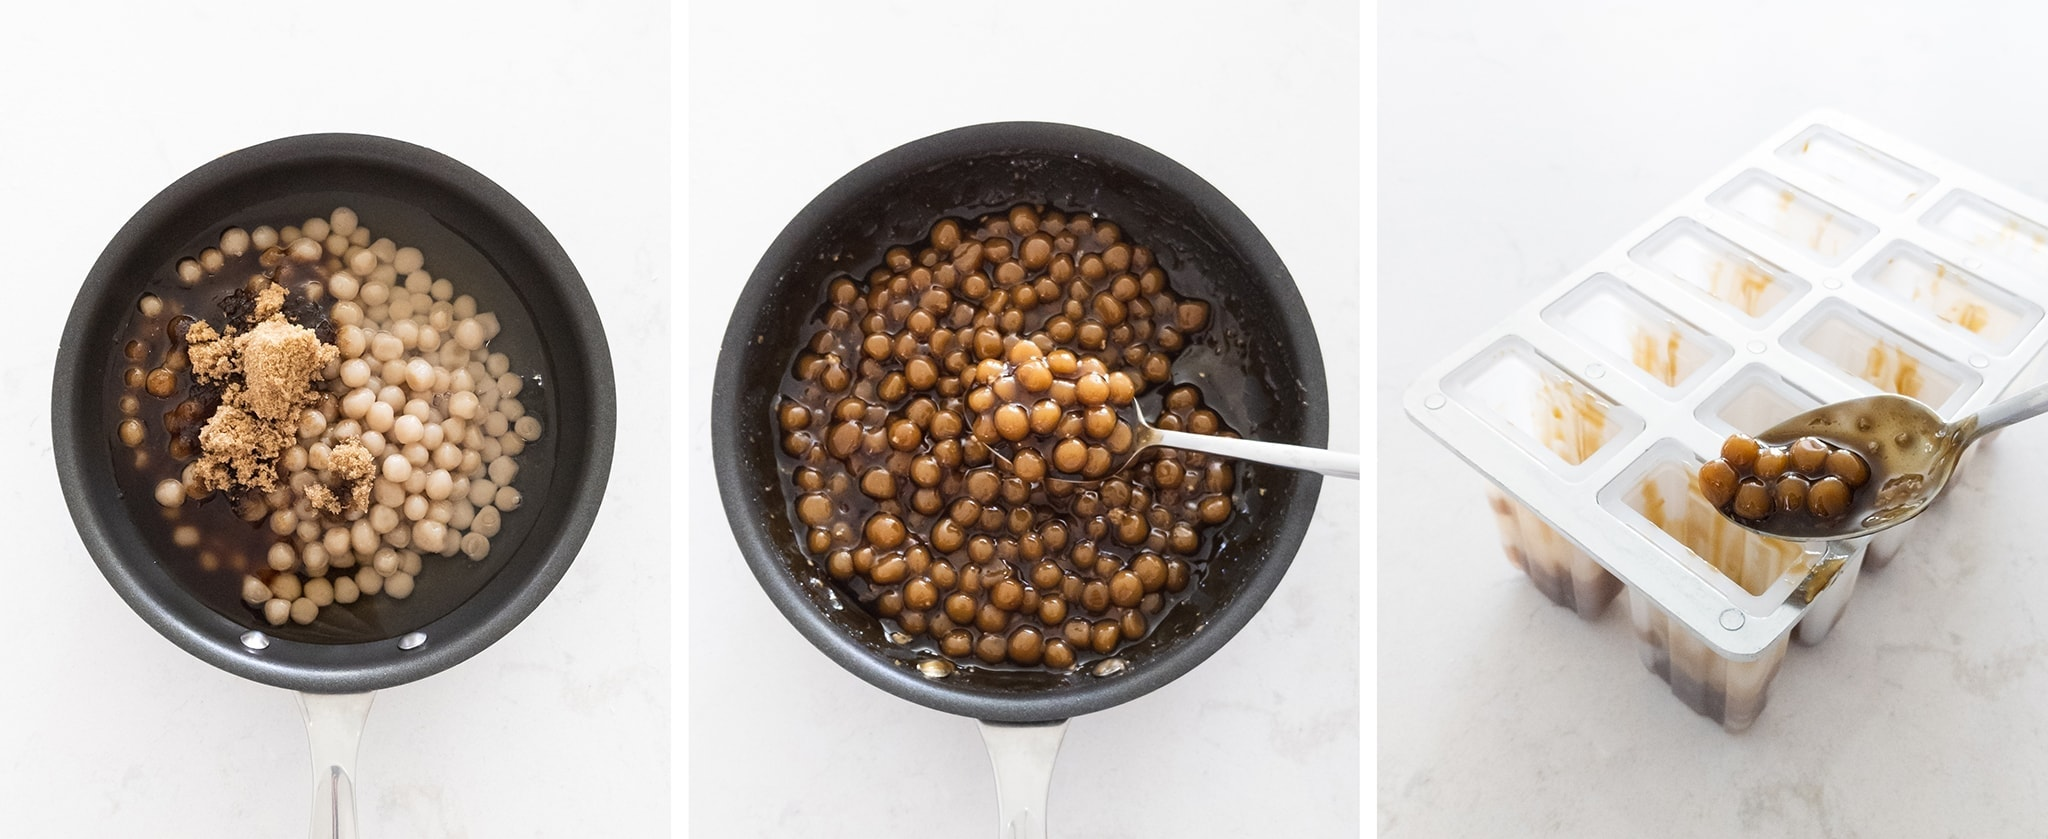 Hand rolled boba pearls in brown sugar syrup